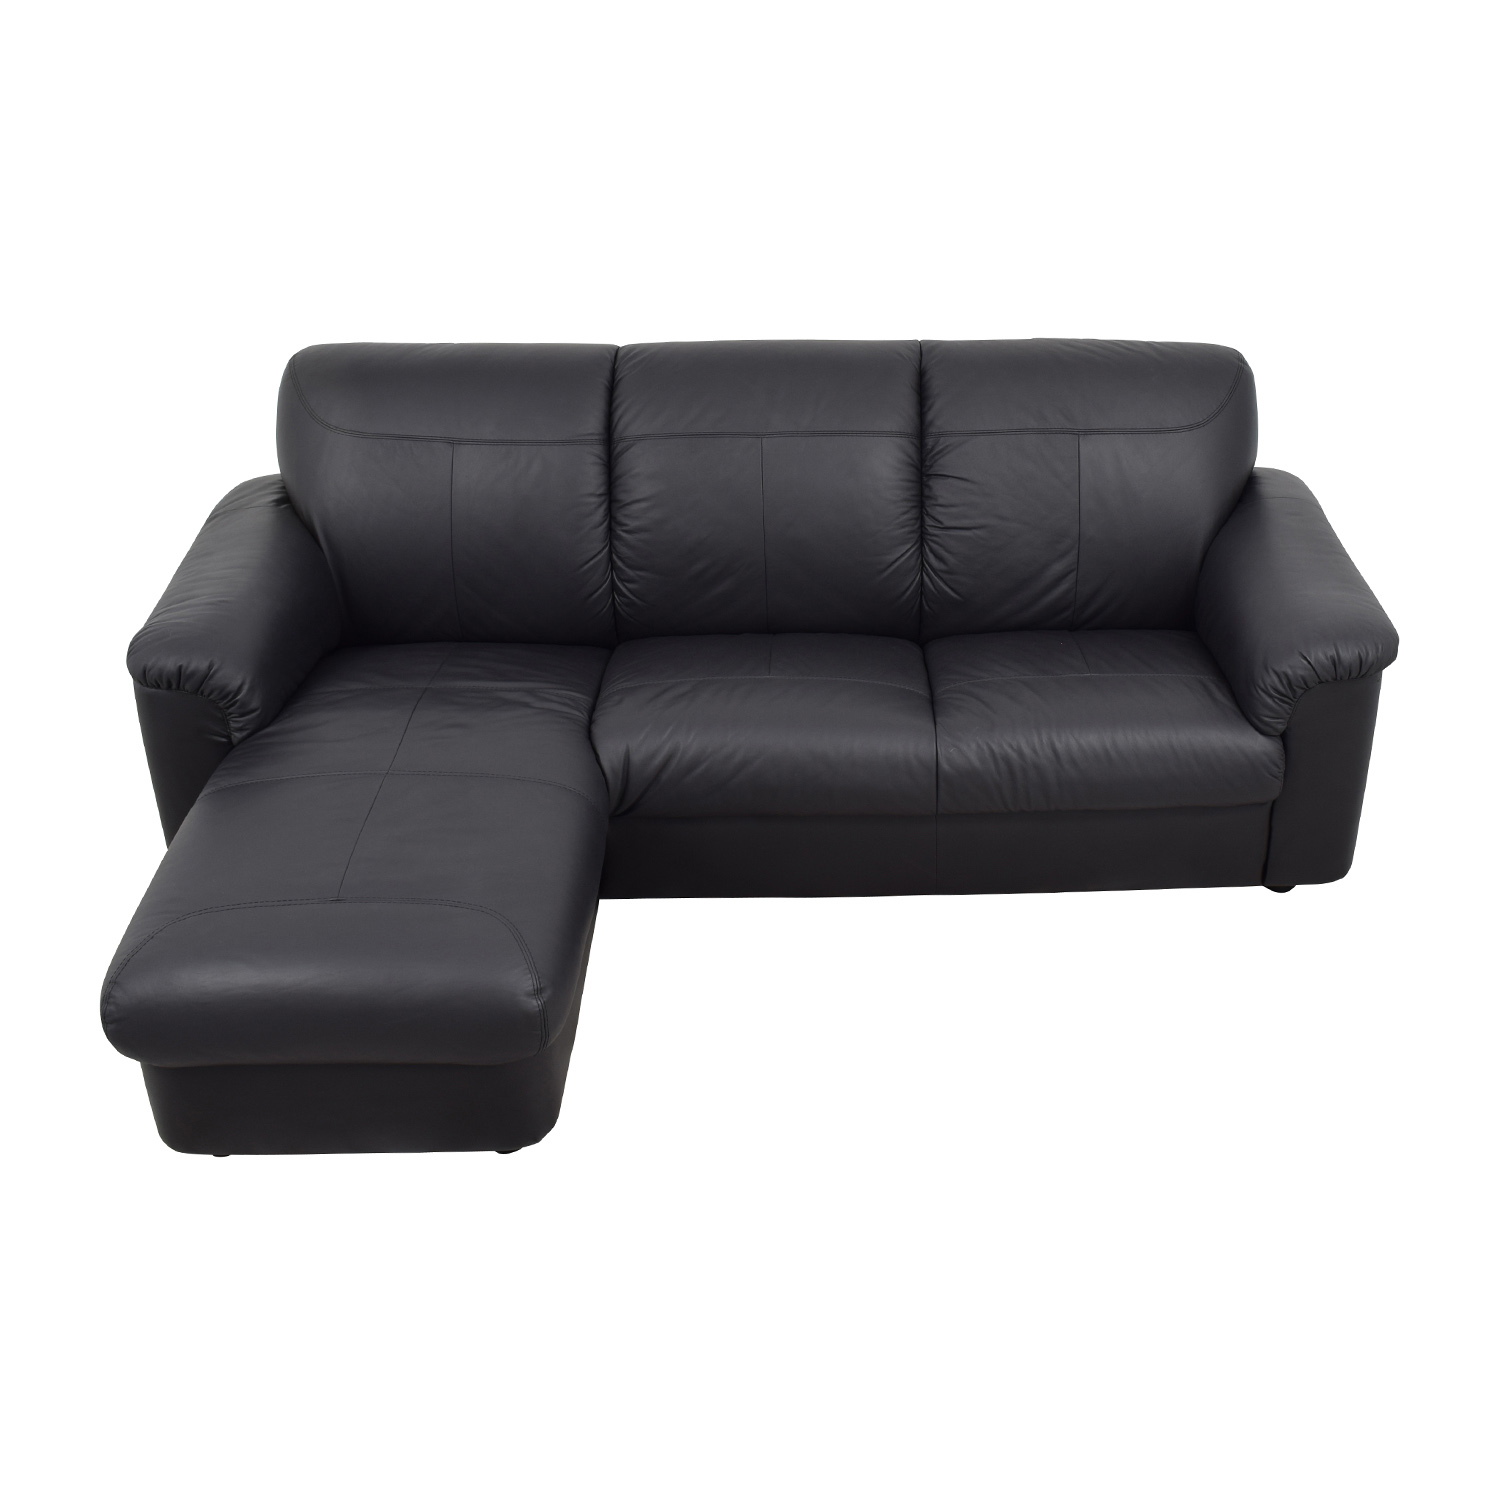 Charmant ... Buy IKEA Black 3 Piece Leather Sectional IKEA Sofas ...